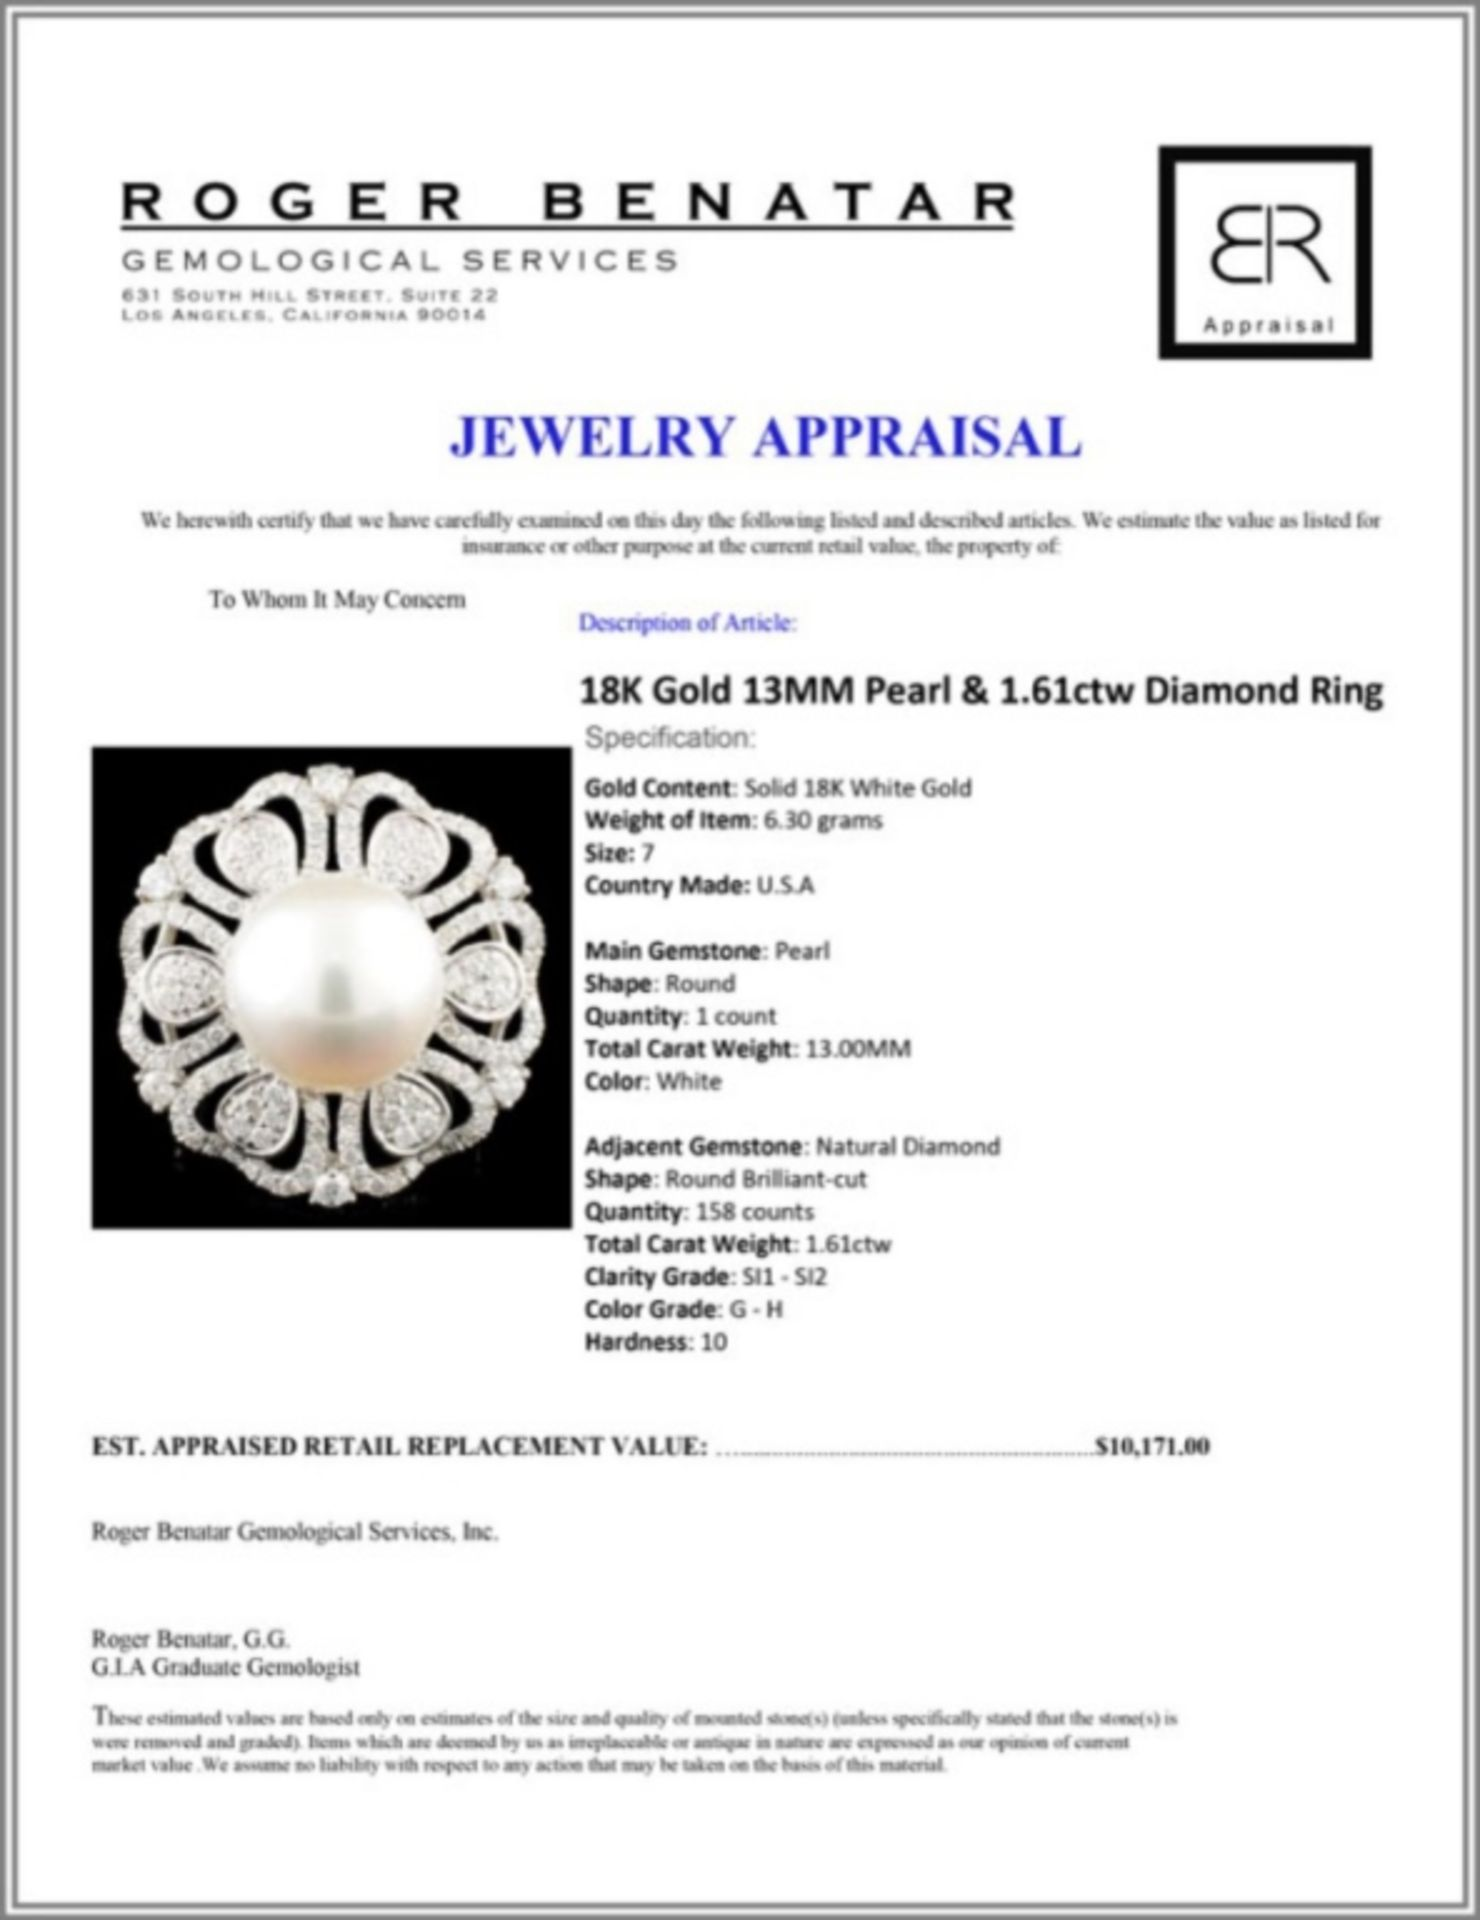 18K Gold 13MM Pearl & 1.61ctw Diamond Ring - Image 5 of 5